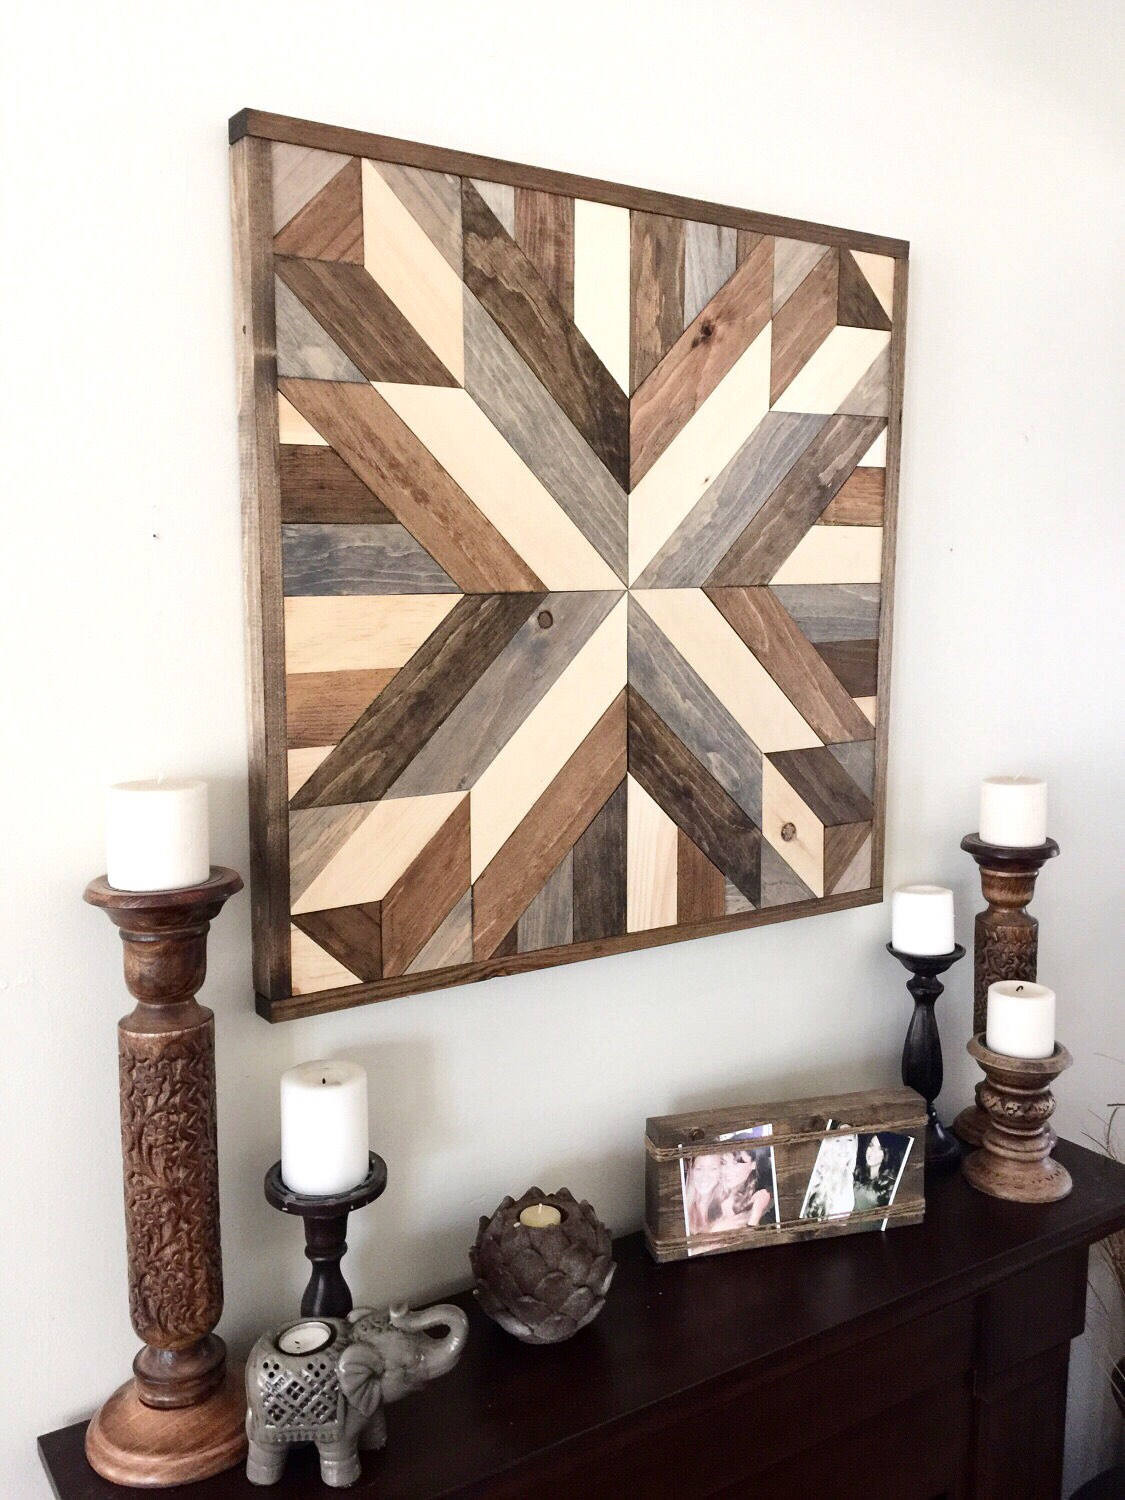 Best ideas about Wooden Wall Art . Save or Pin Reclaimed wood wall art wood art rustic wall decor Now.